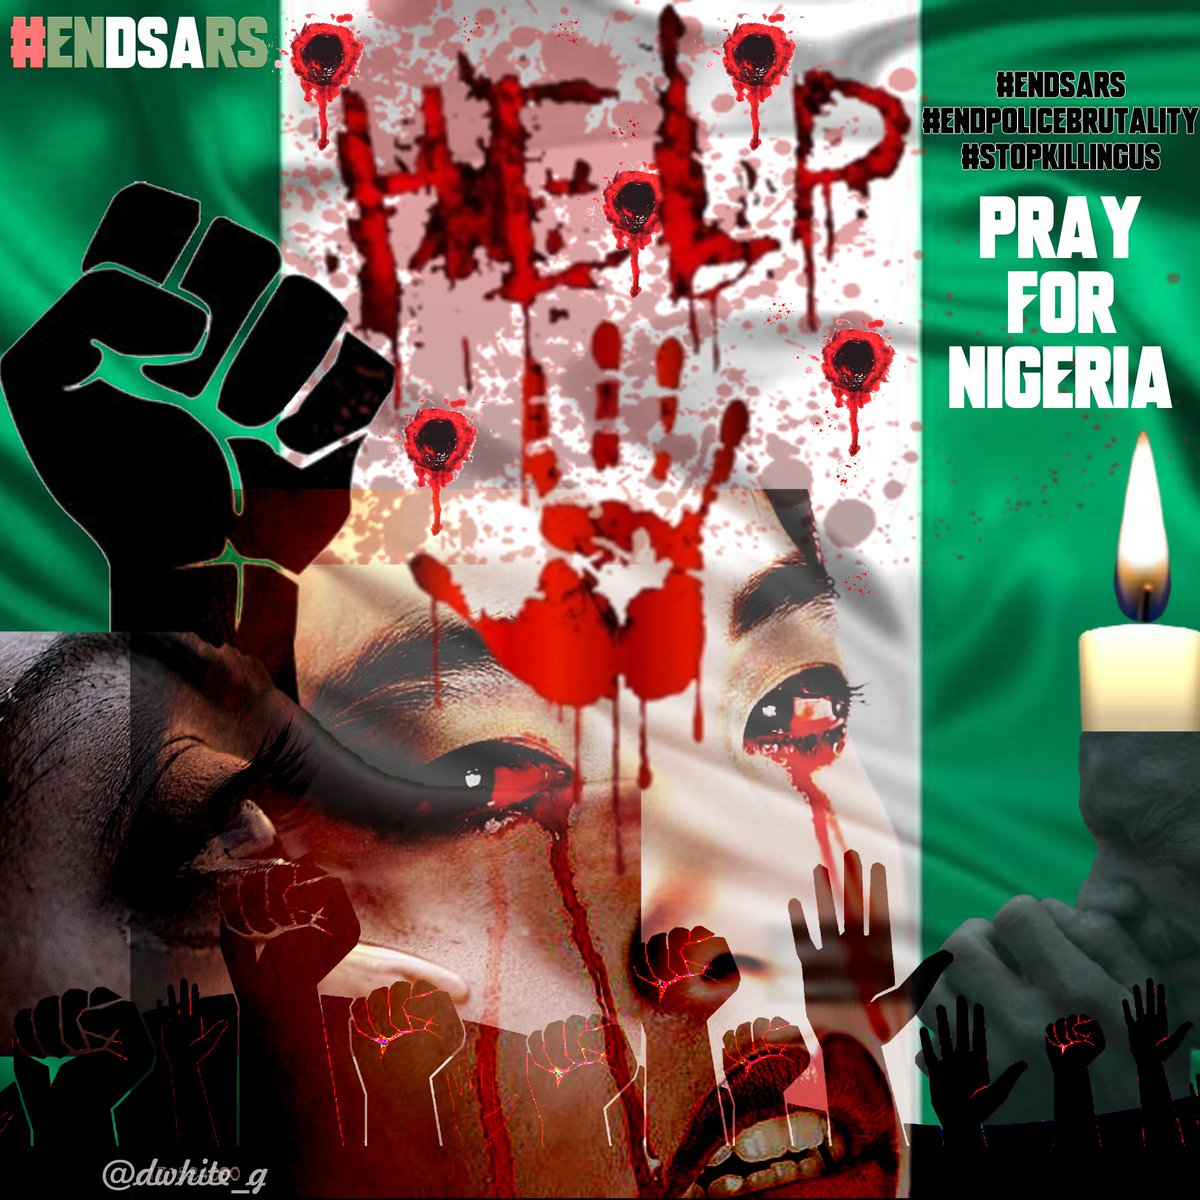 Today 20_10_2020 I feel the pain the most #ourcountry have been stained with blood Our white is now red our green has dried oh What a mysterious #deaths #calamity Youths killing their fellow innocent youths Father's killing their children GOD please help your children  #EndSARS https://t.co/a2jswzIp8n